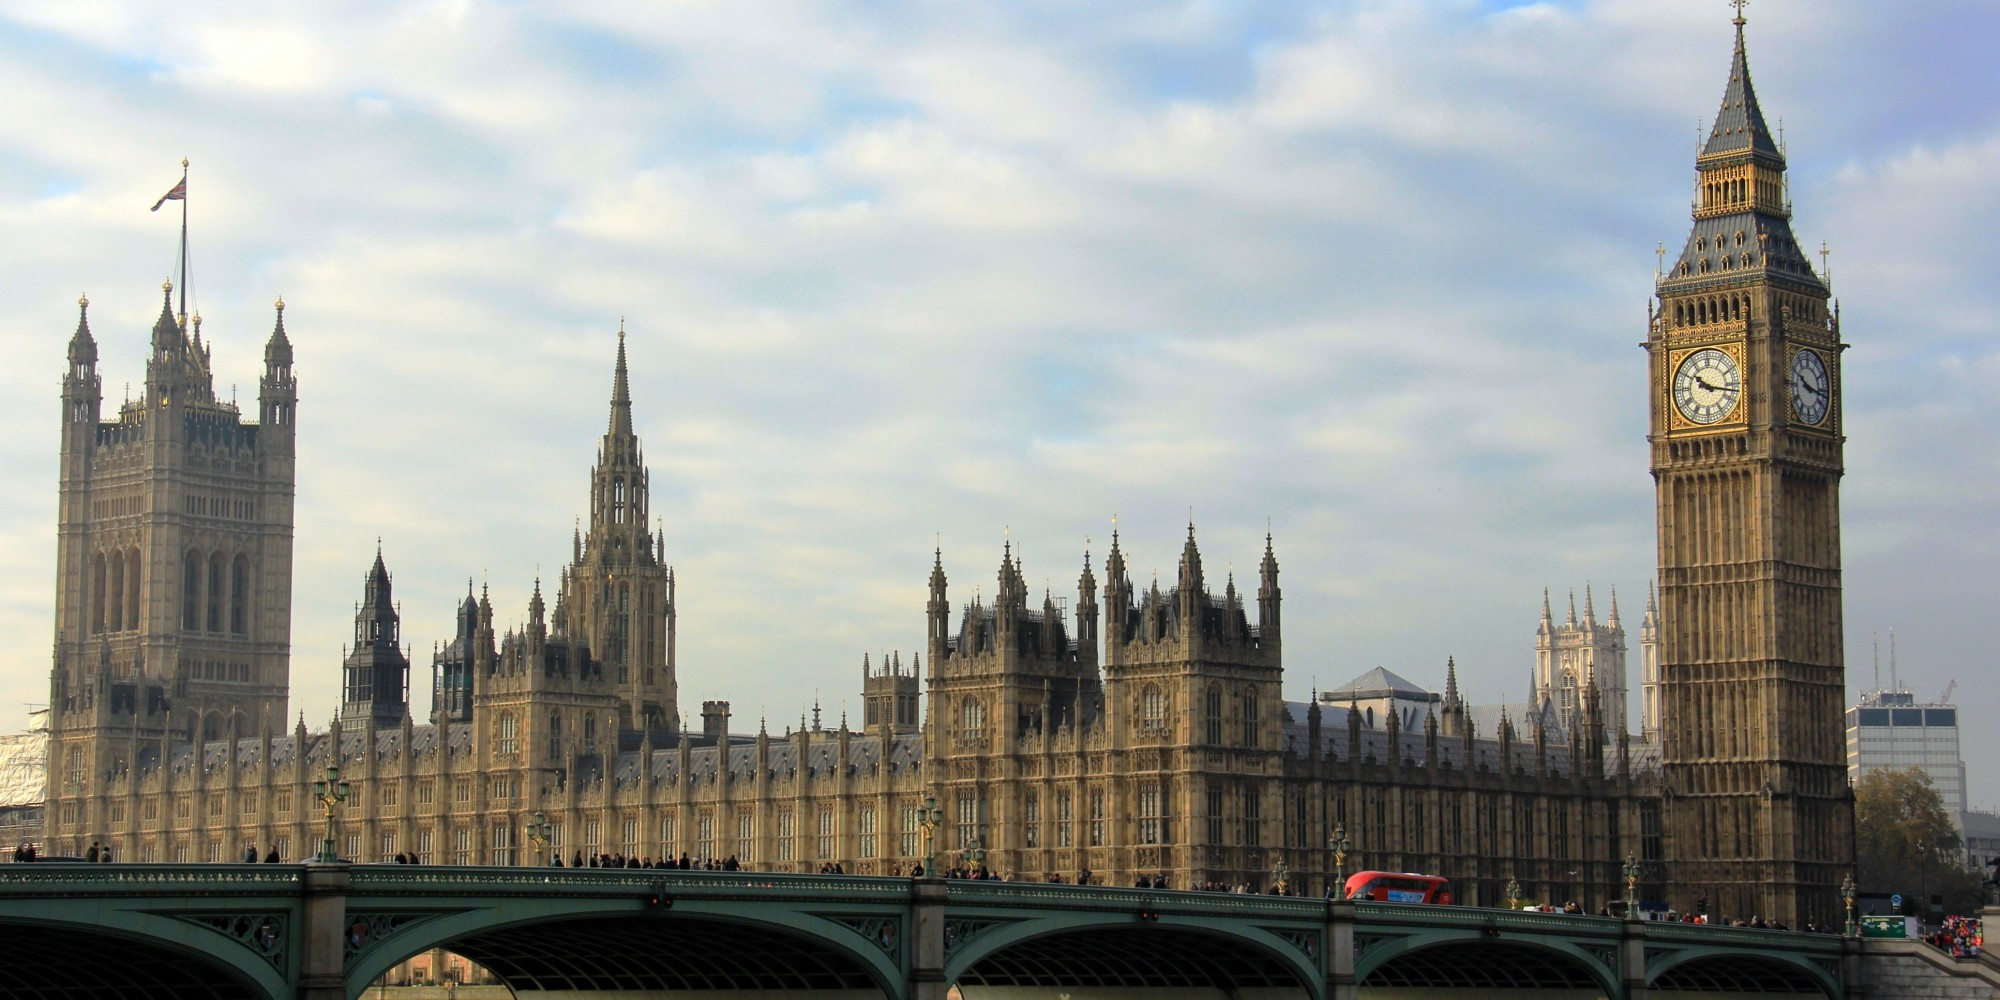 Houses Of Parliament To Stay In London For Refurbishment ...